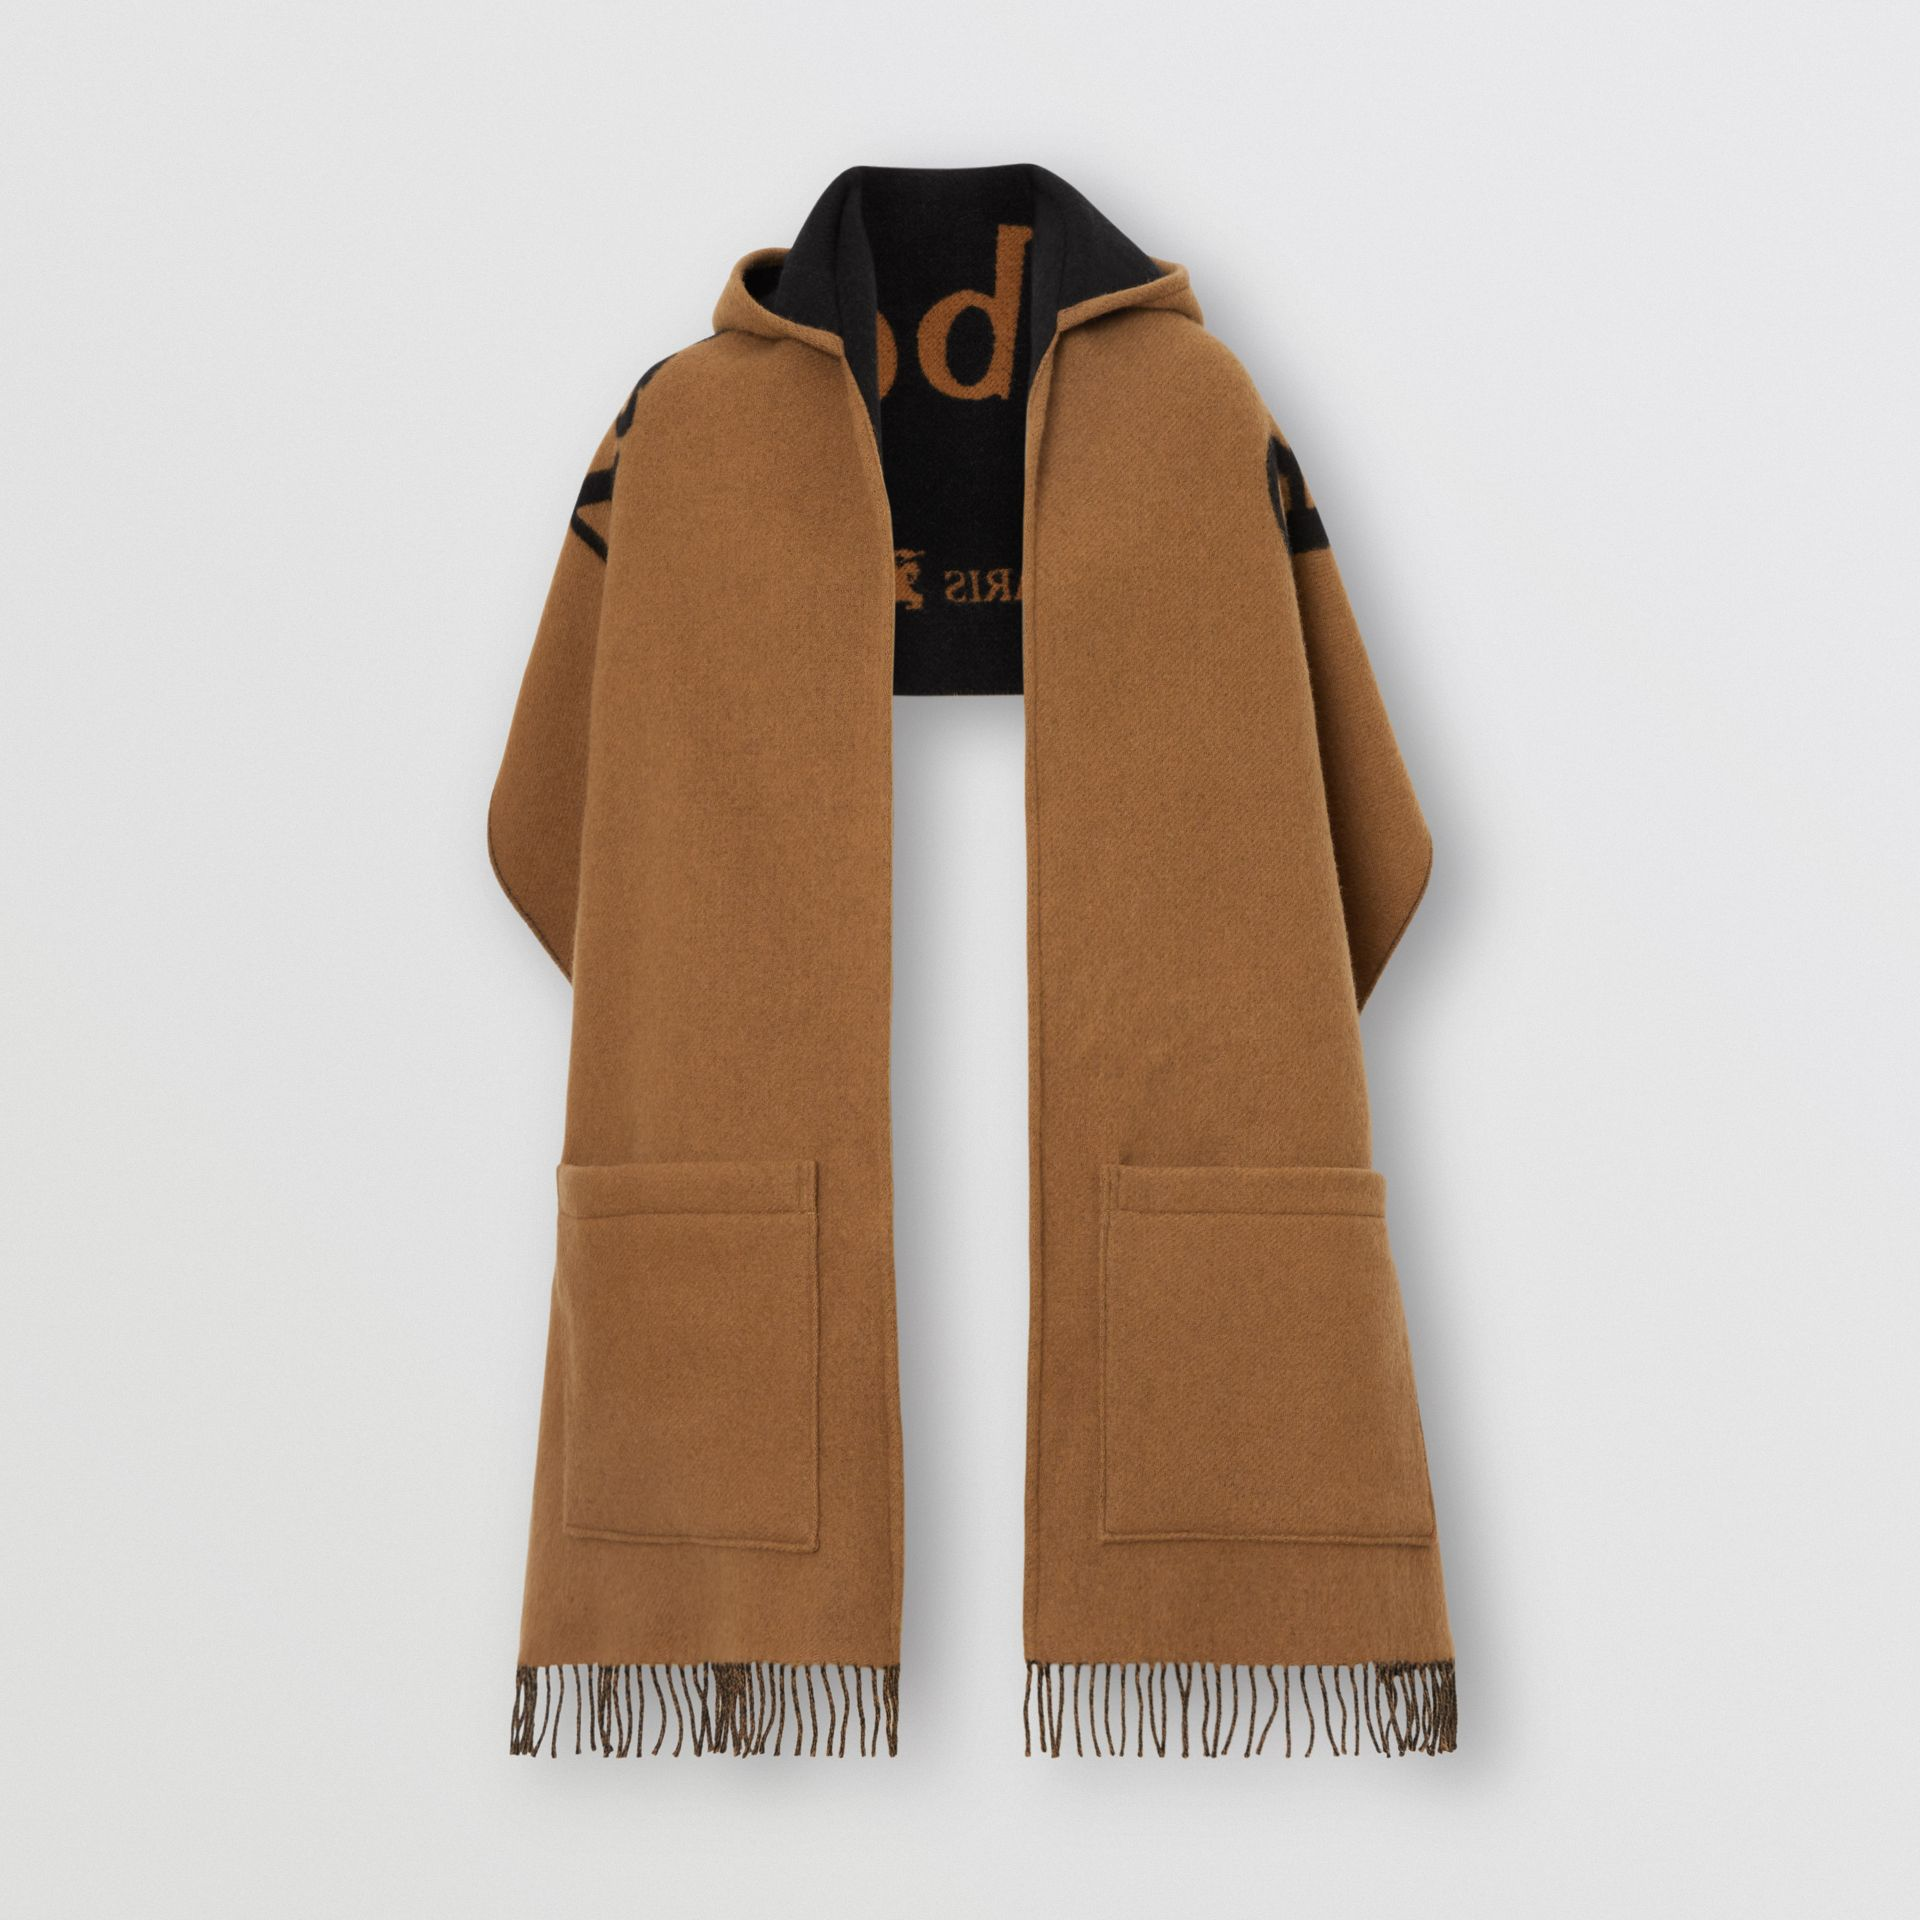 Archive Logo Wool Cashmere Hooded Scarf in Hazelnut - Women | Burberry - gallery image 3